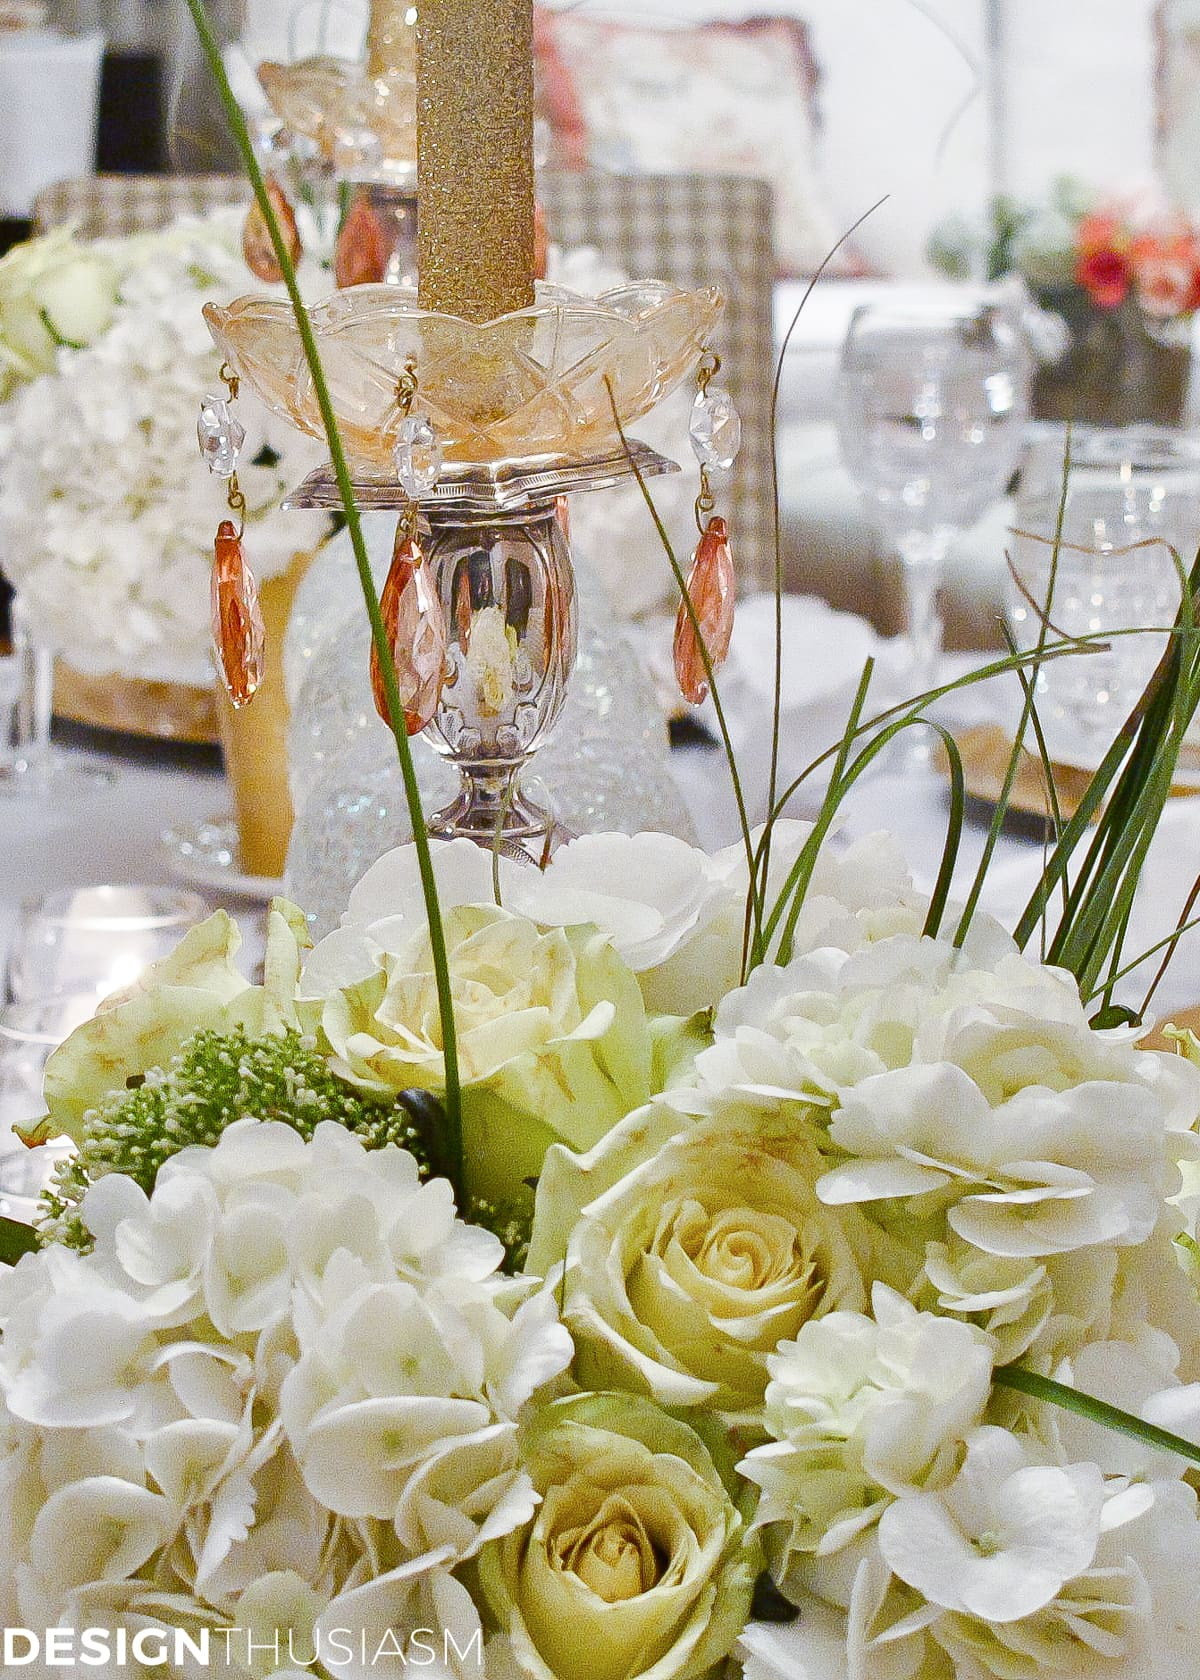 New Years Party Themes: Tablescape with Timepieces